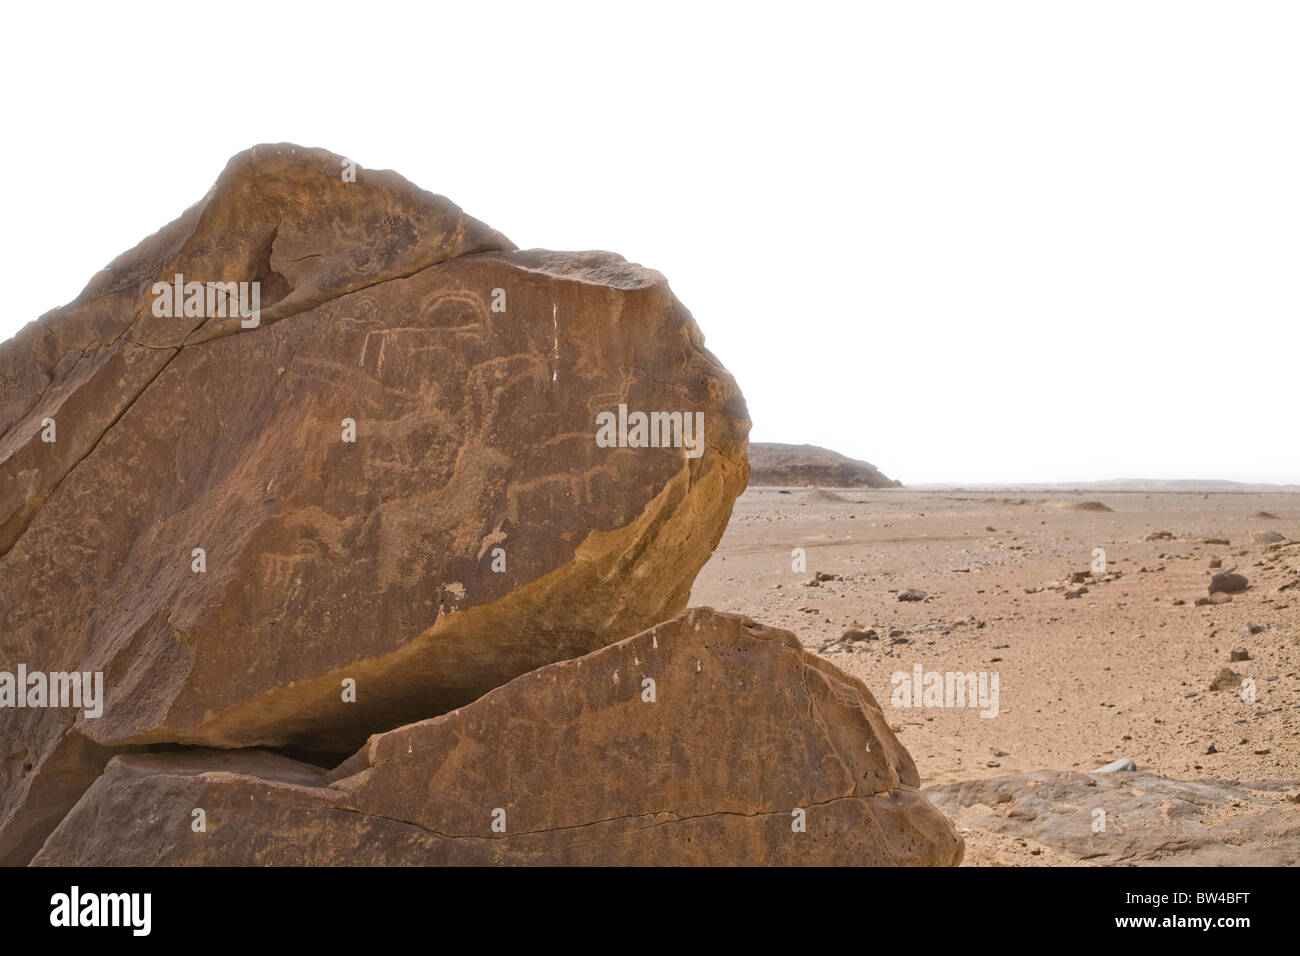 Images of animals scratched on rocks in a dry wadi bed in the Eastern Desert, Egypt - Stock Image